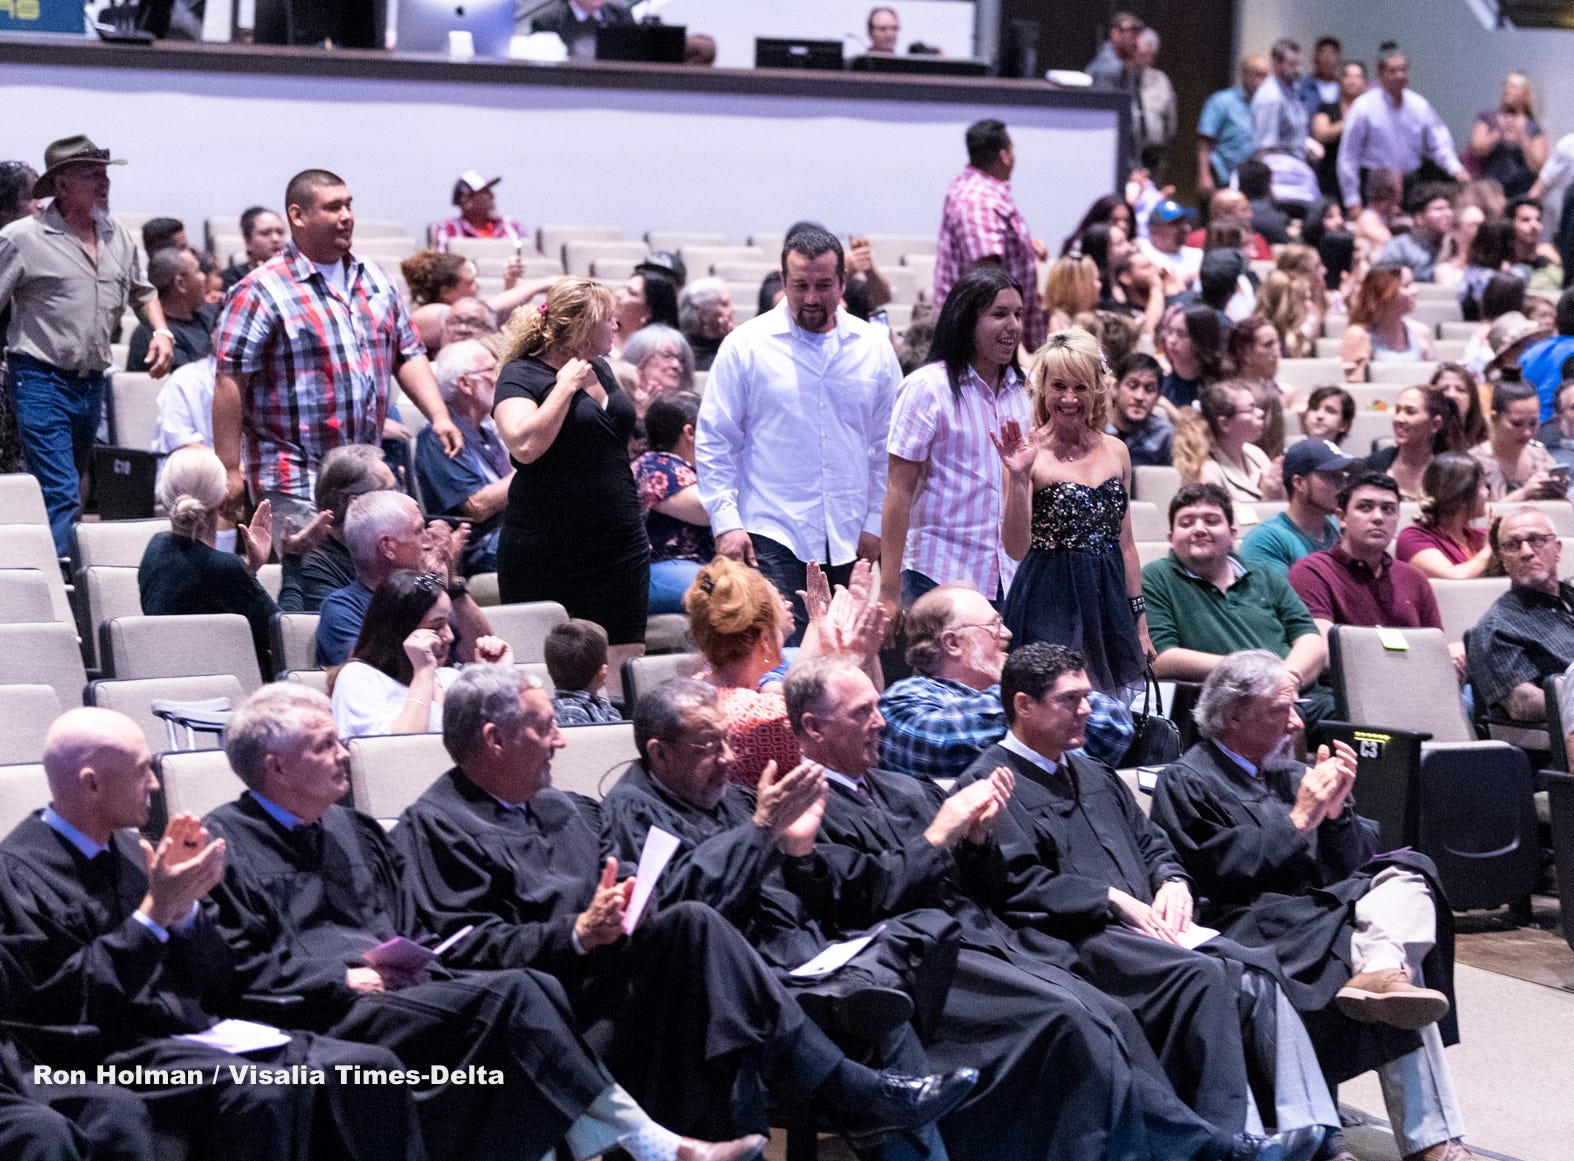 Graduates enter the Tulare County Adult Drug Court Graduation & Commencement Ceremony on Wednesday, April 24, 2019.